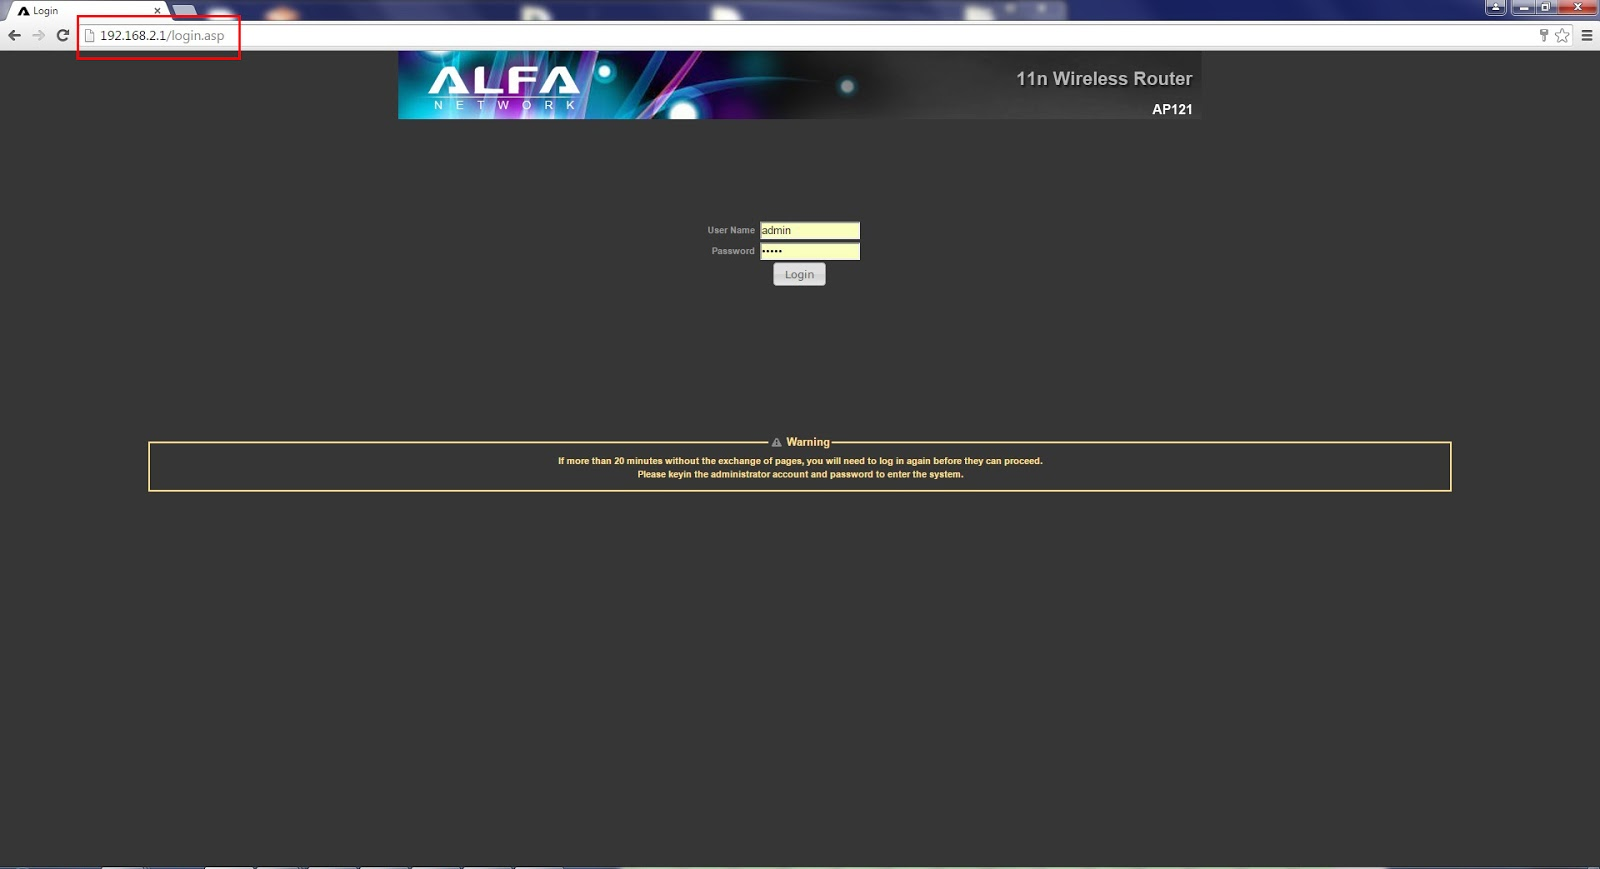 ALFA NETWORK: AP121 to OpenWRT In -and-Out Step-by-Step Procedure